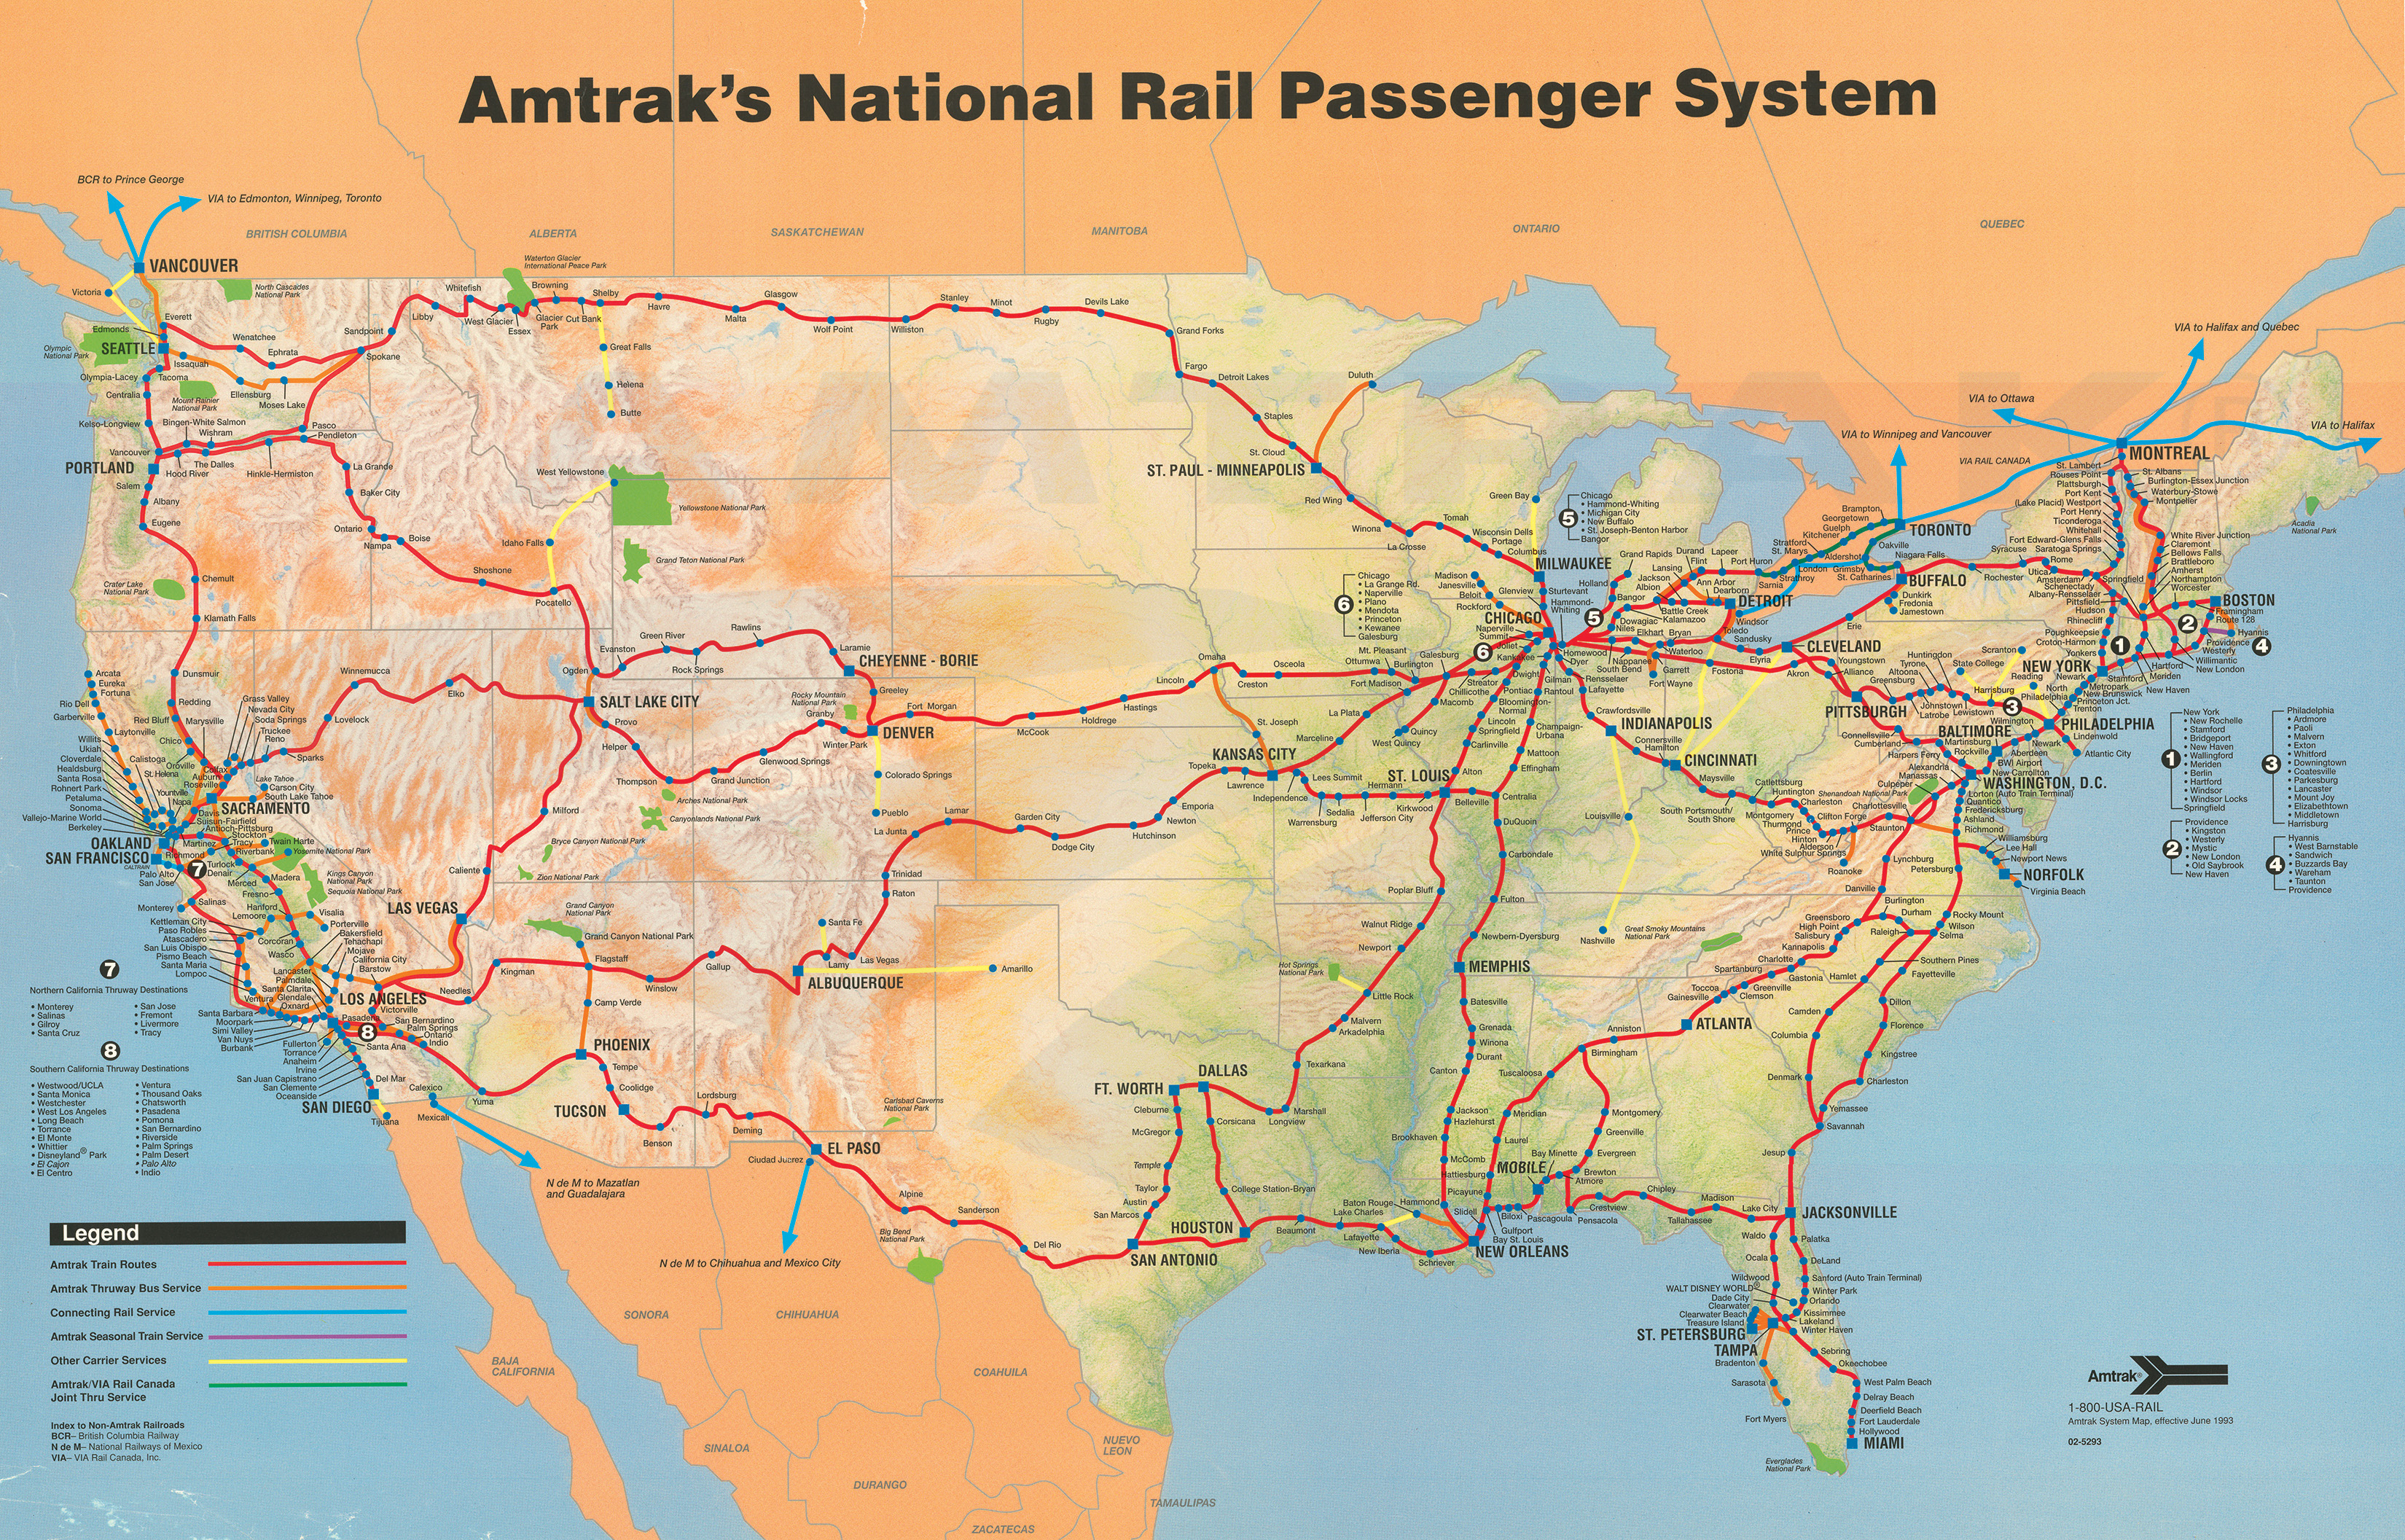 Amtrak System Map Amtrak History Of Americas Railroad - Amtrak map of routes in us